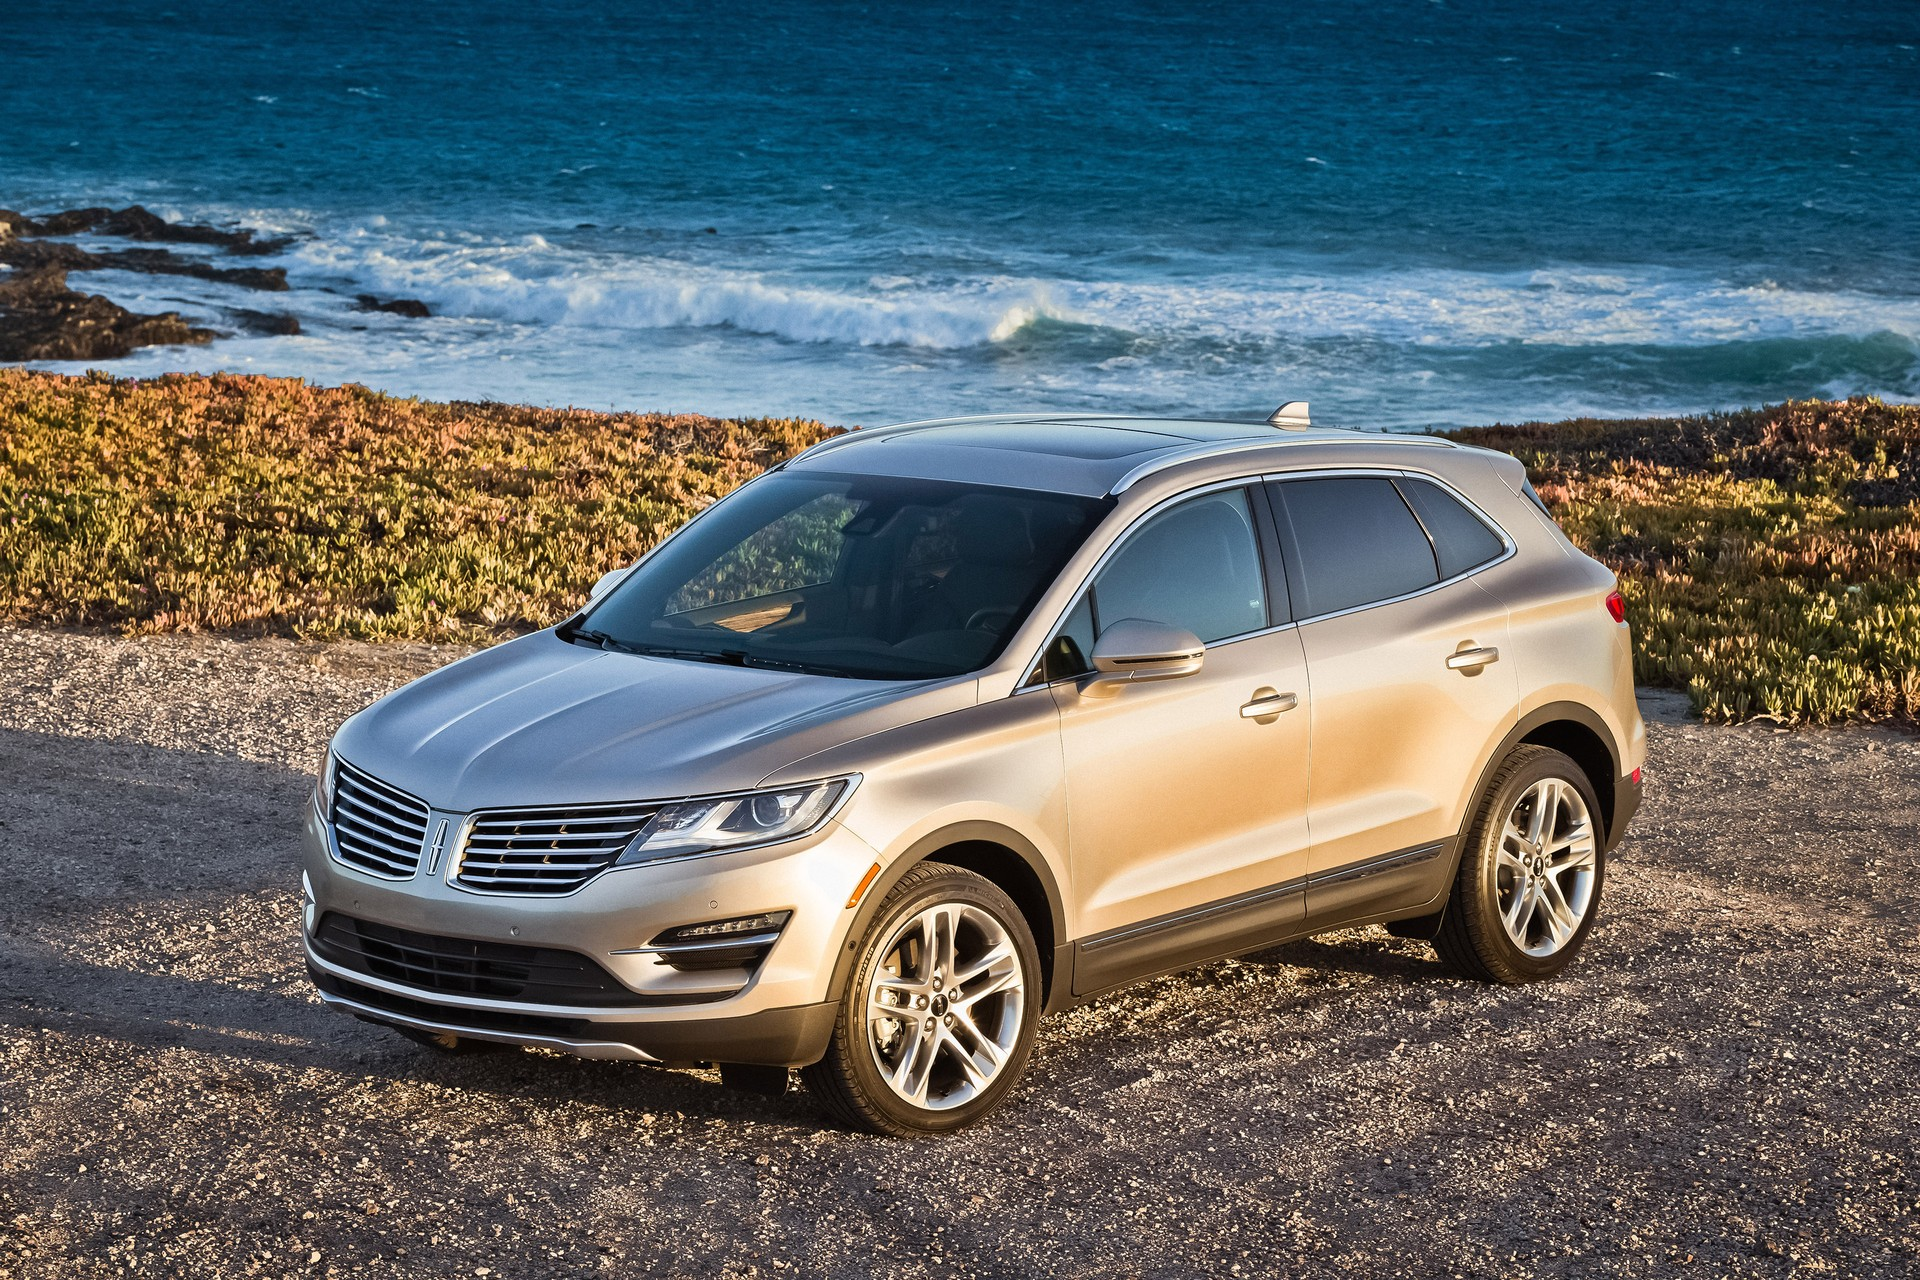 new and used lincoln mkc prices the car connection autos post. Black Bedroom Furniture Sets. Home Design Ideas